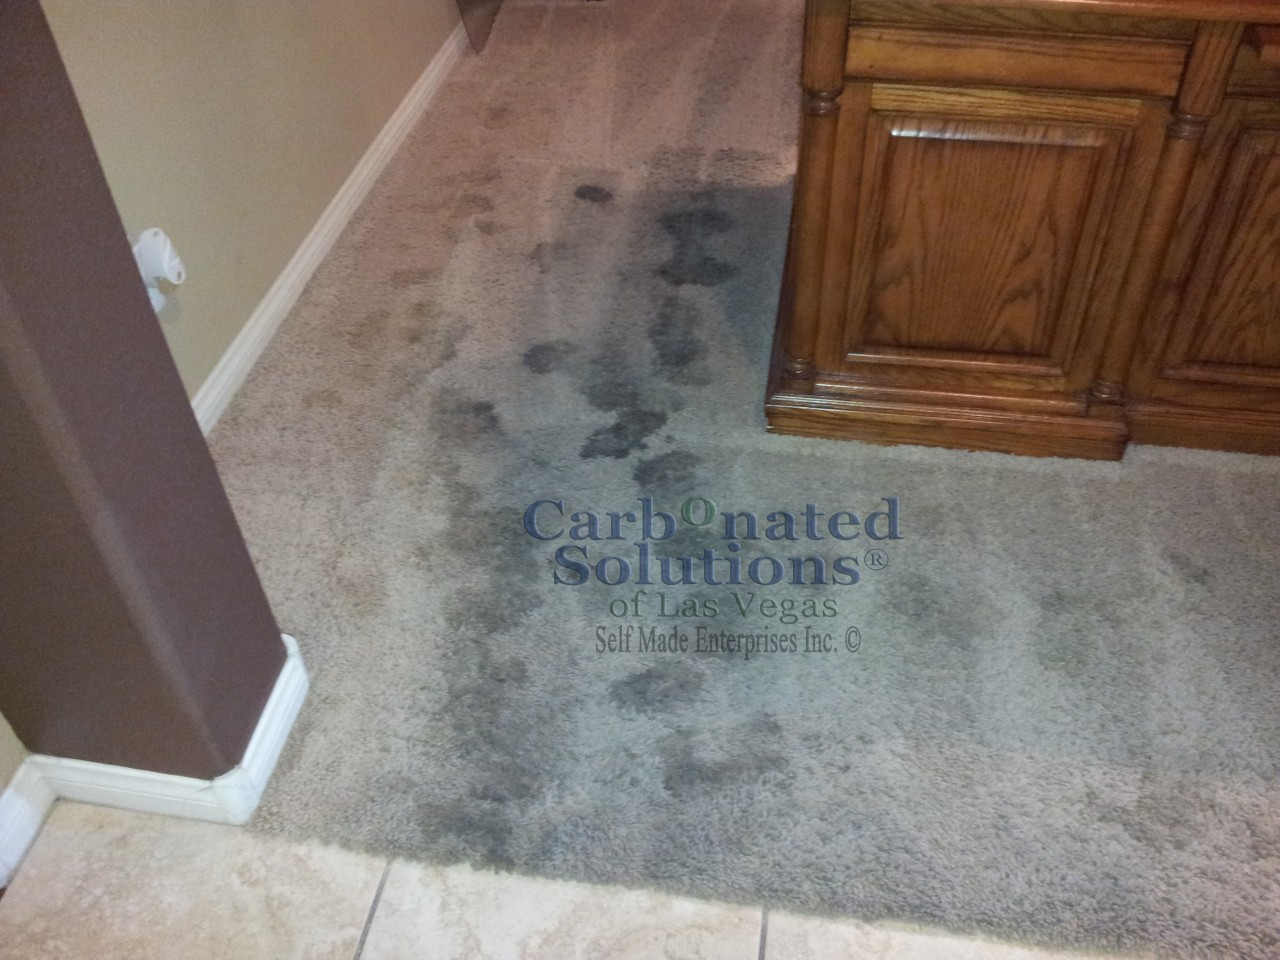 www.carbonatedsolutionsoflasvegas.com/Pet urine treatment by Carbonated Solutions carpet cleaners